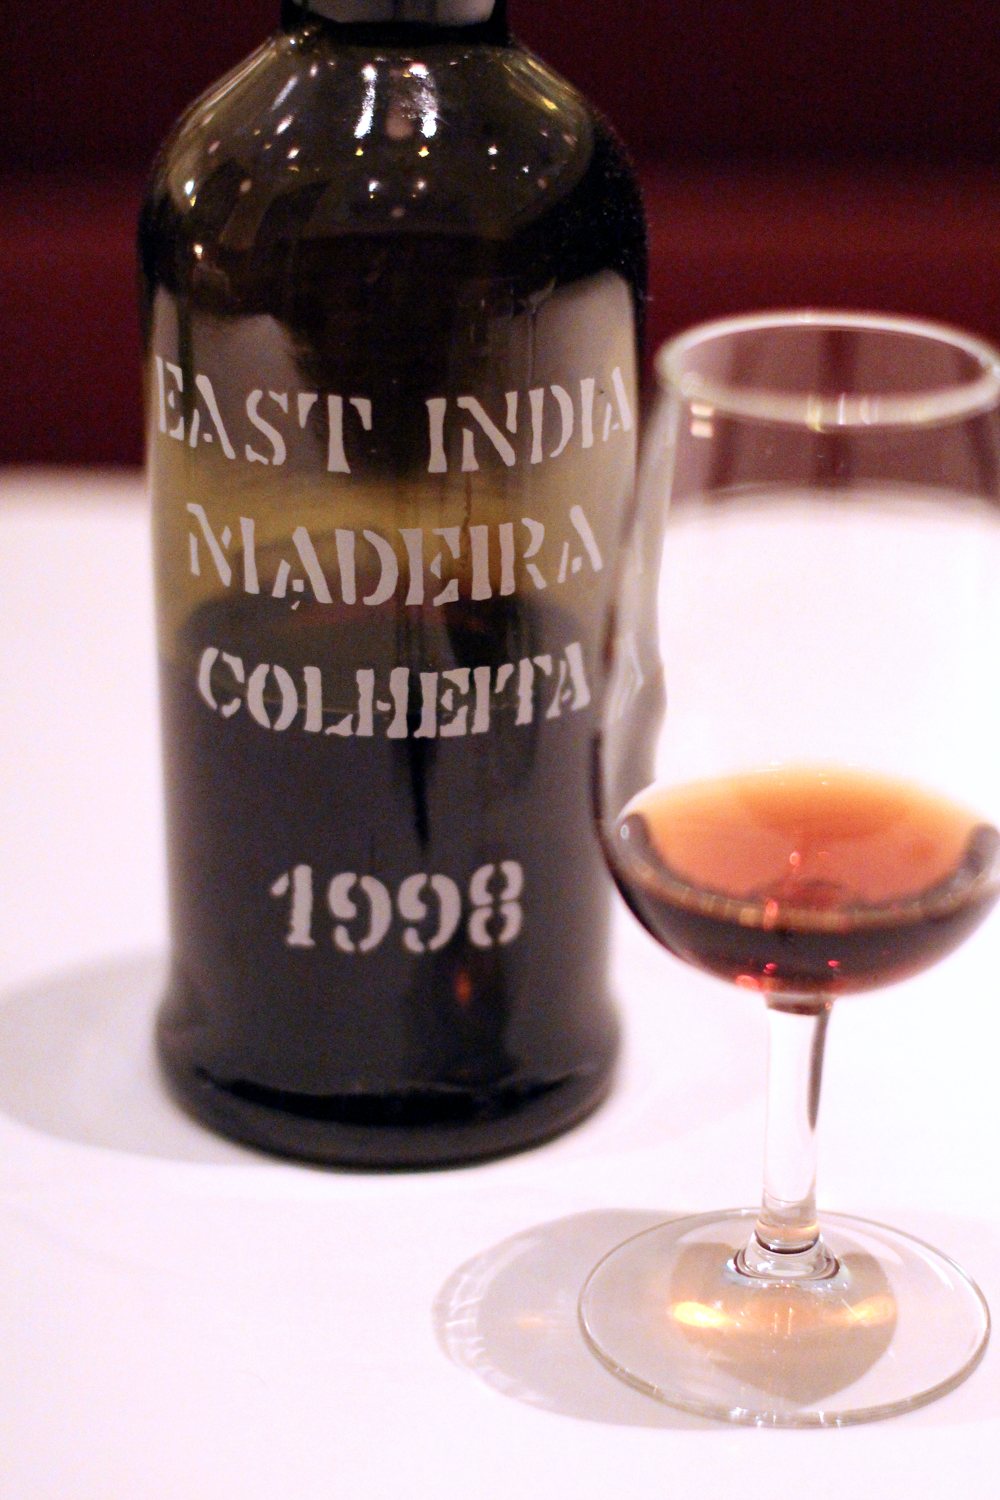 Madeira wine at Brasserie Waszawska, Poland - lifestyle & restaurant blog